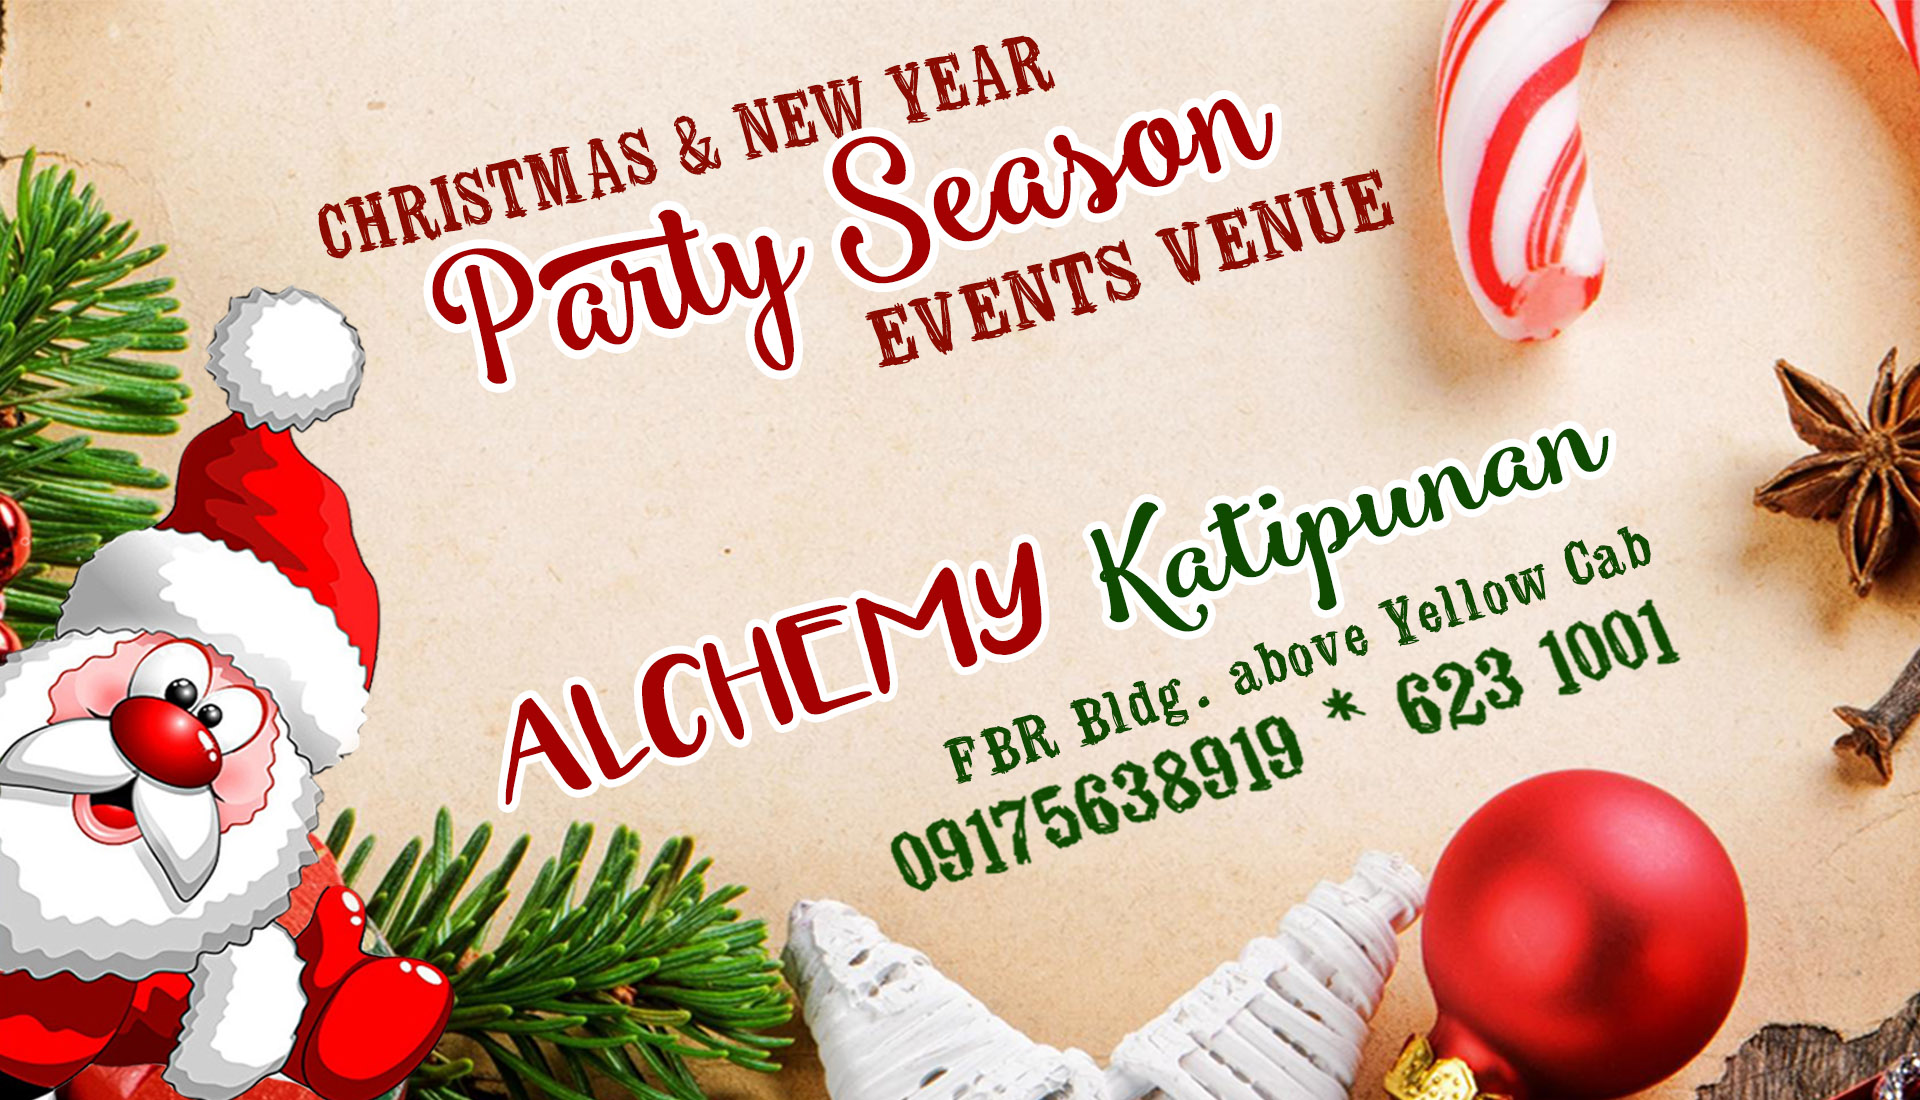 Party Venue at Alchemy Katipunan